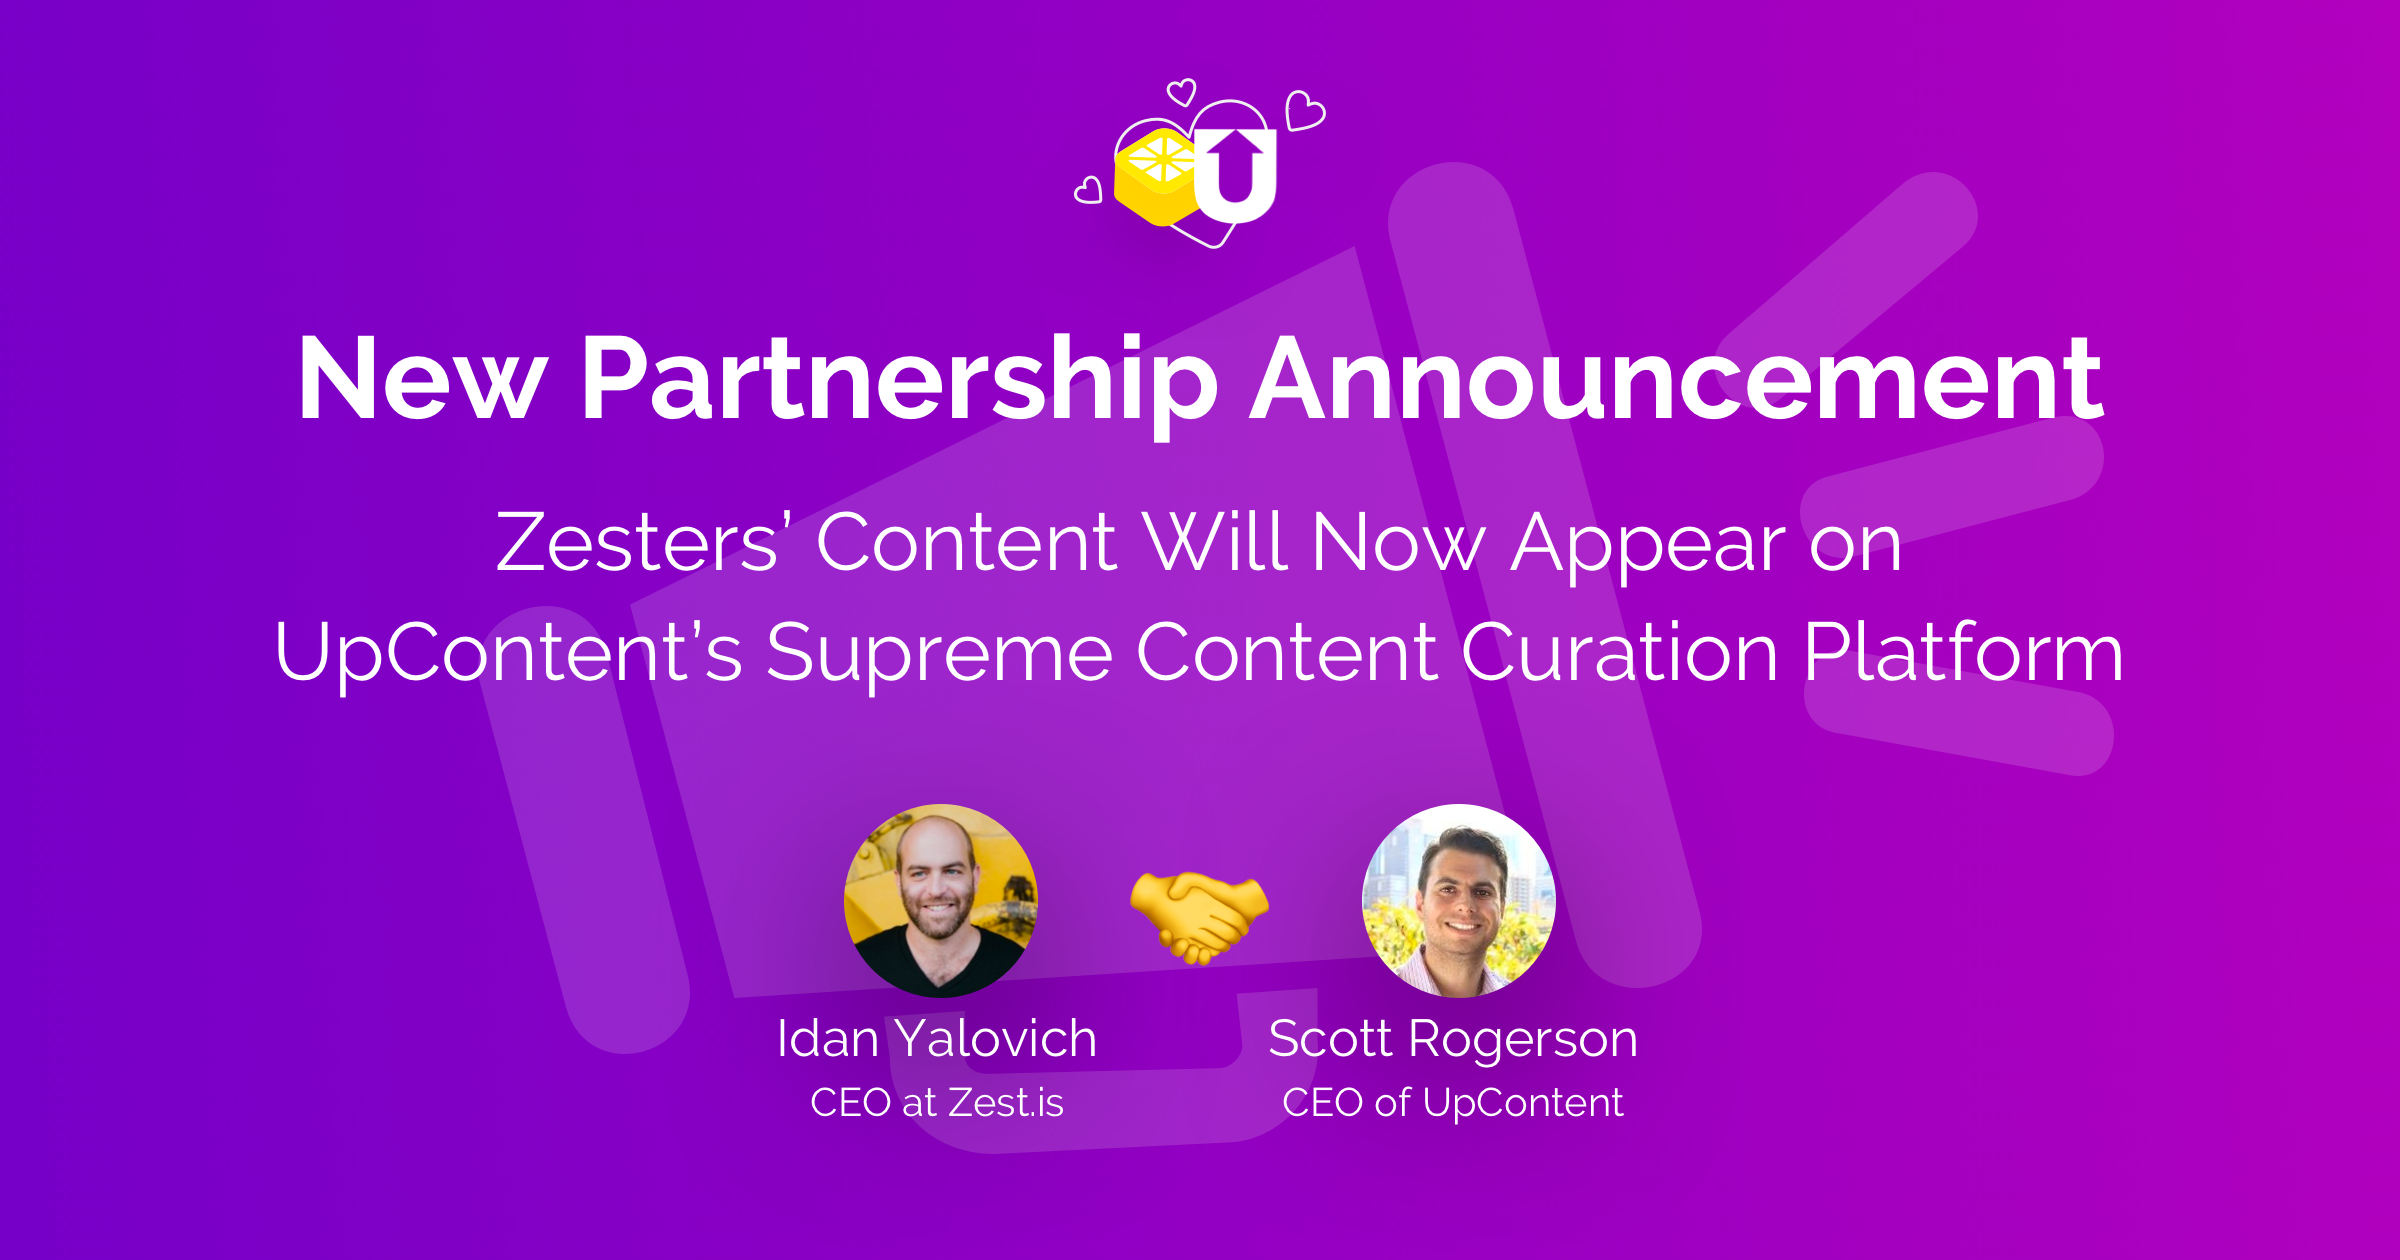 Hero image for UpContent + Zest partnership. Features images of Scott Rogerson, CEO of UpContent and Idan Yalovich, CEO of Zest. Plus handshake emoji and title: New Partnership Announcement: Zesters' Content Will Now Appear On UpContent's Supreme Content Curation Platform